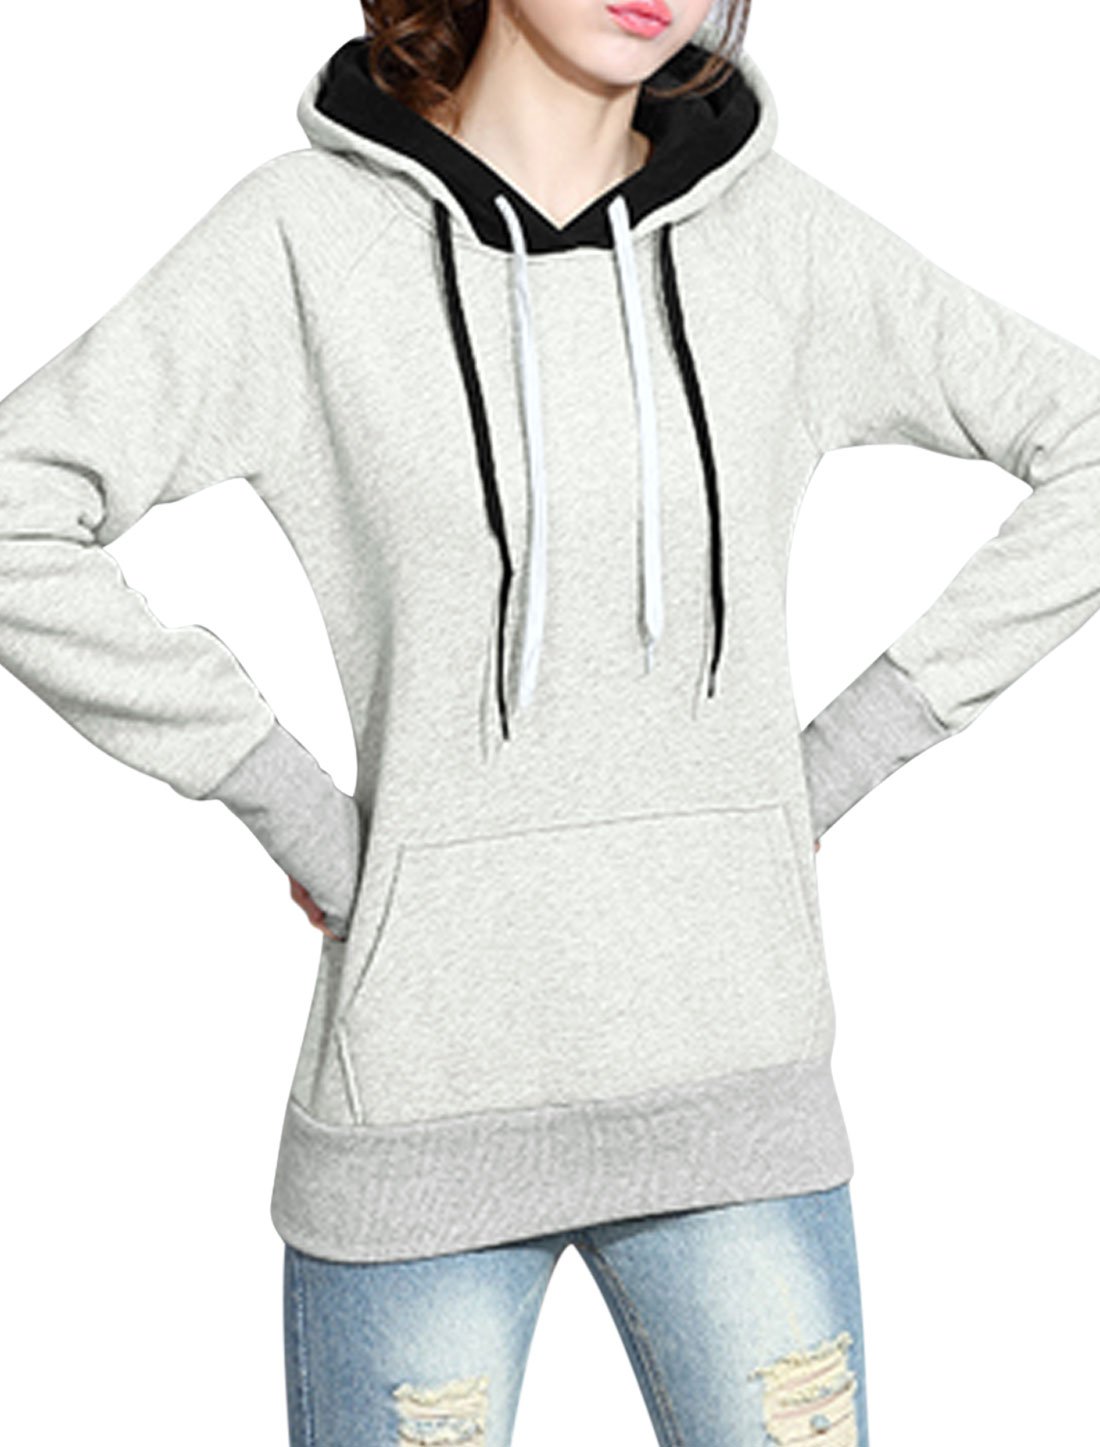 Ladies Kangaroo Pocket Double Layer Hooded Sweatshirt Gray XS